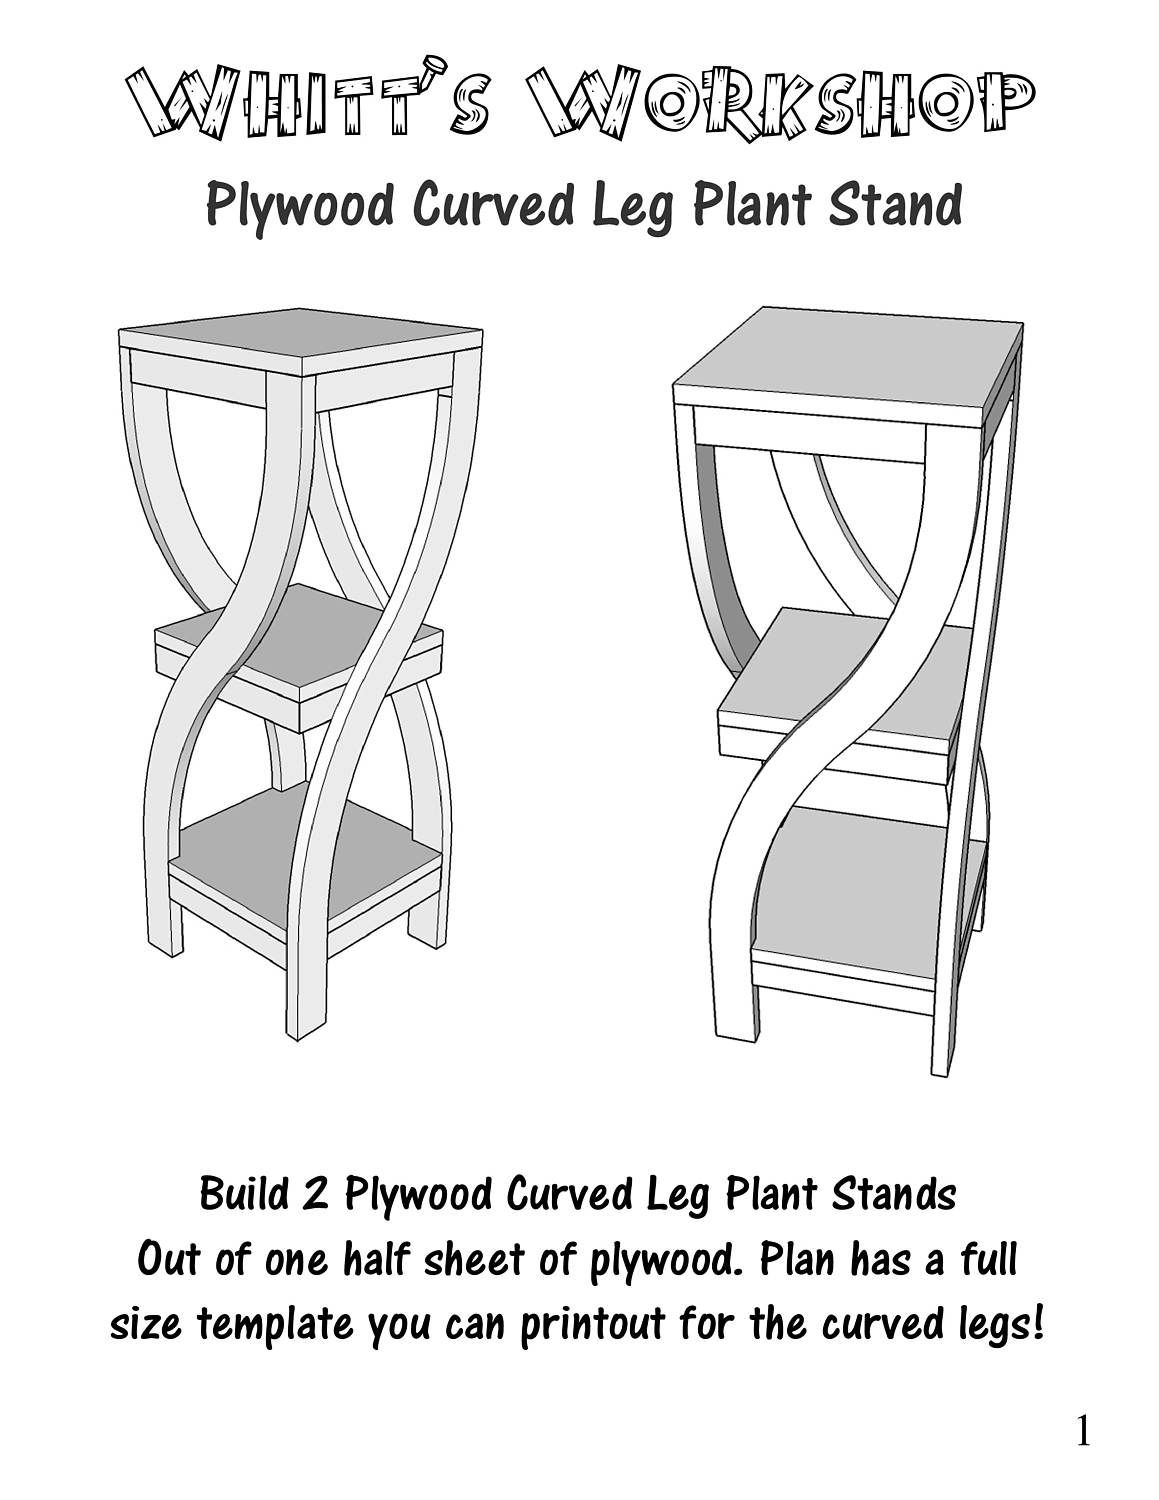 Plywood Curved Leg Plant Stand Etsy Plant Stand Wood Plans Best Woodworking Tools